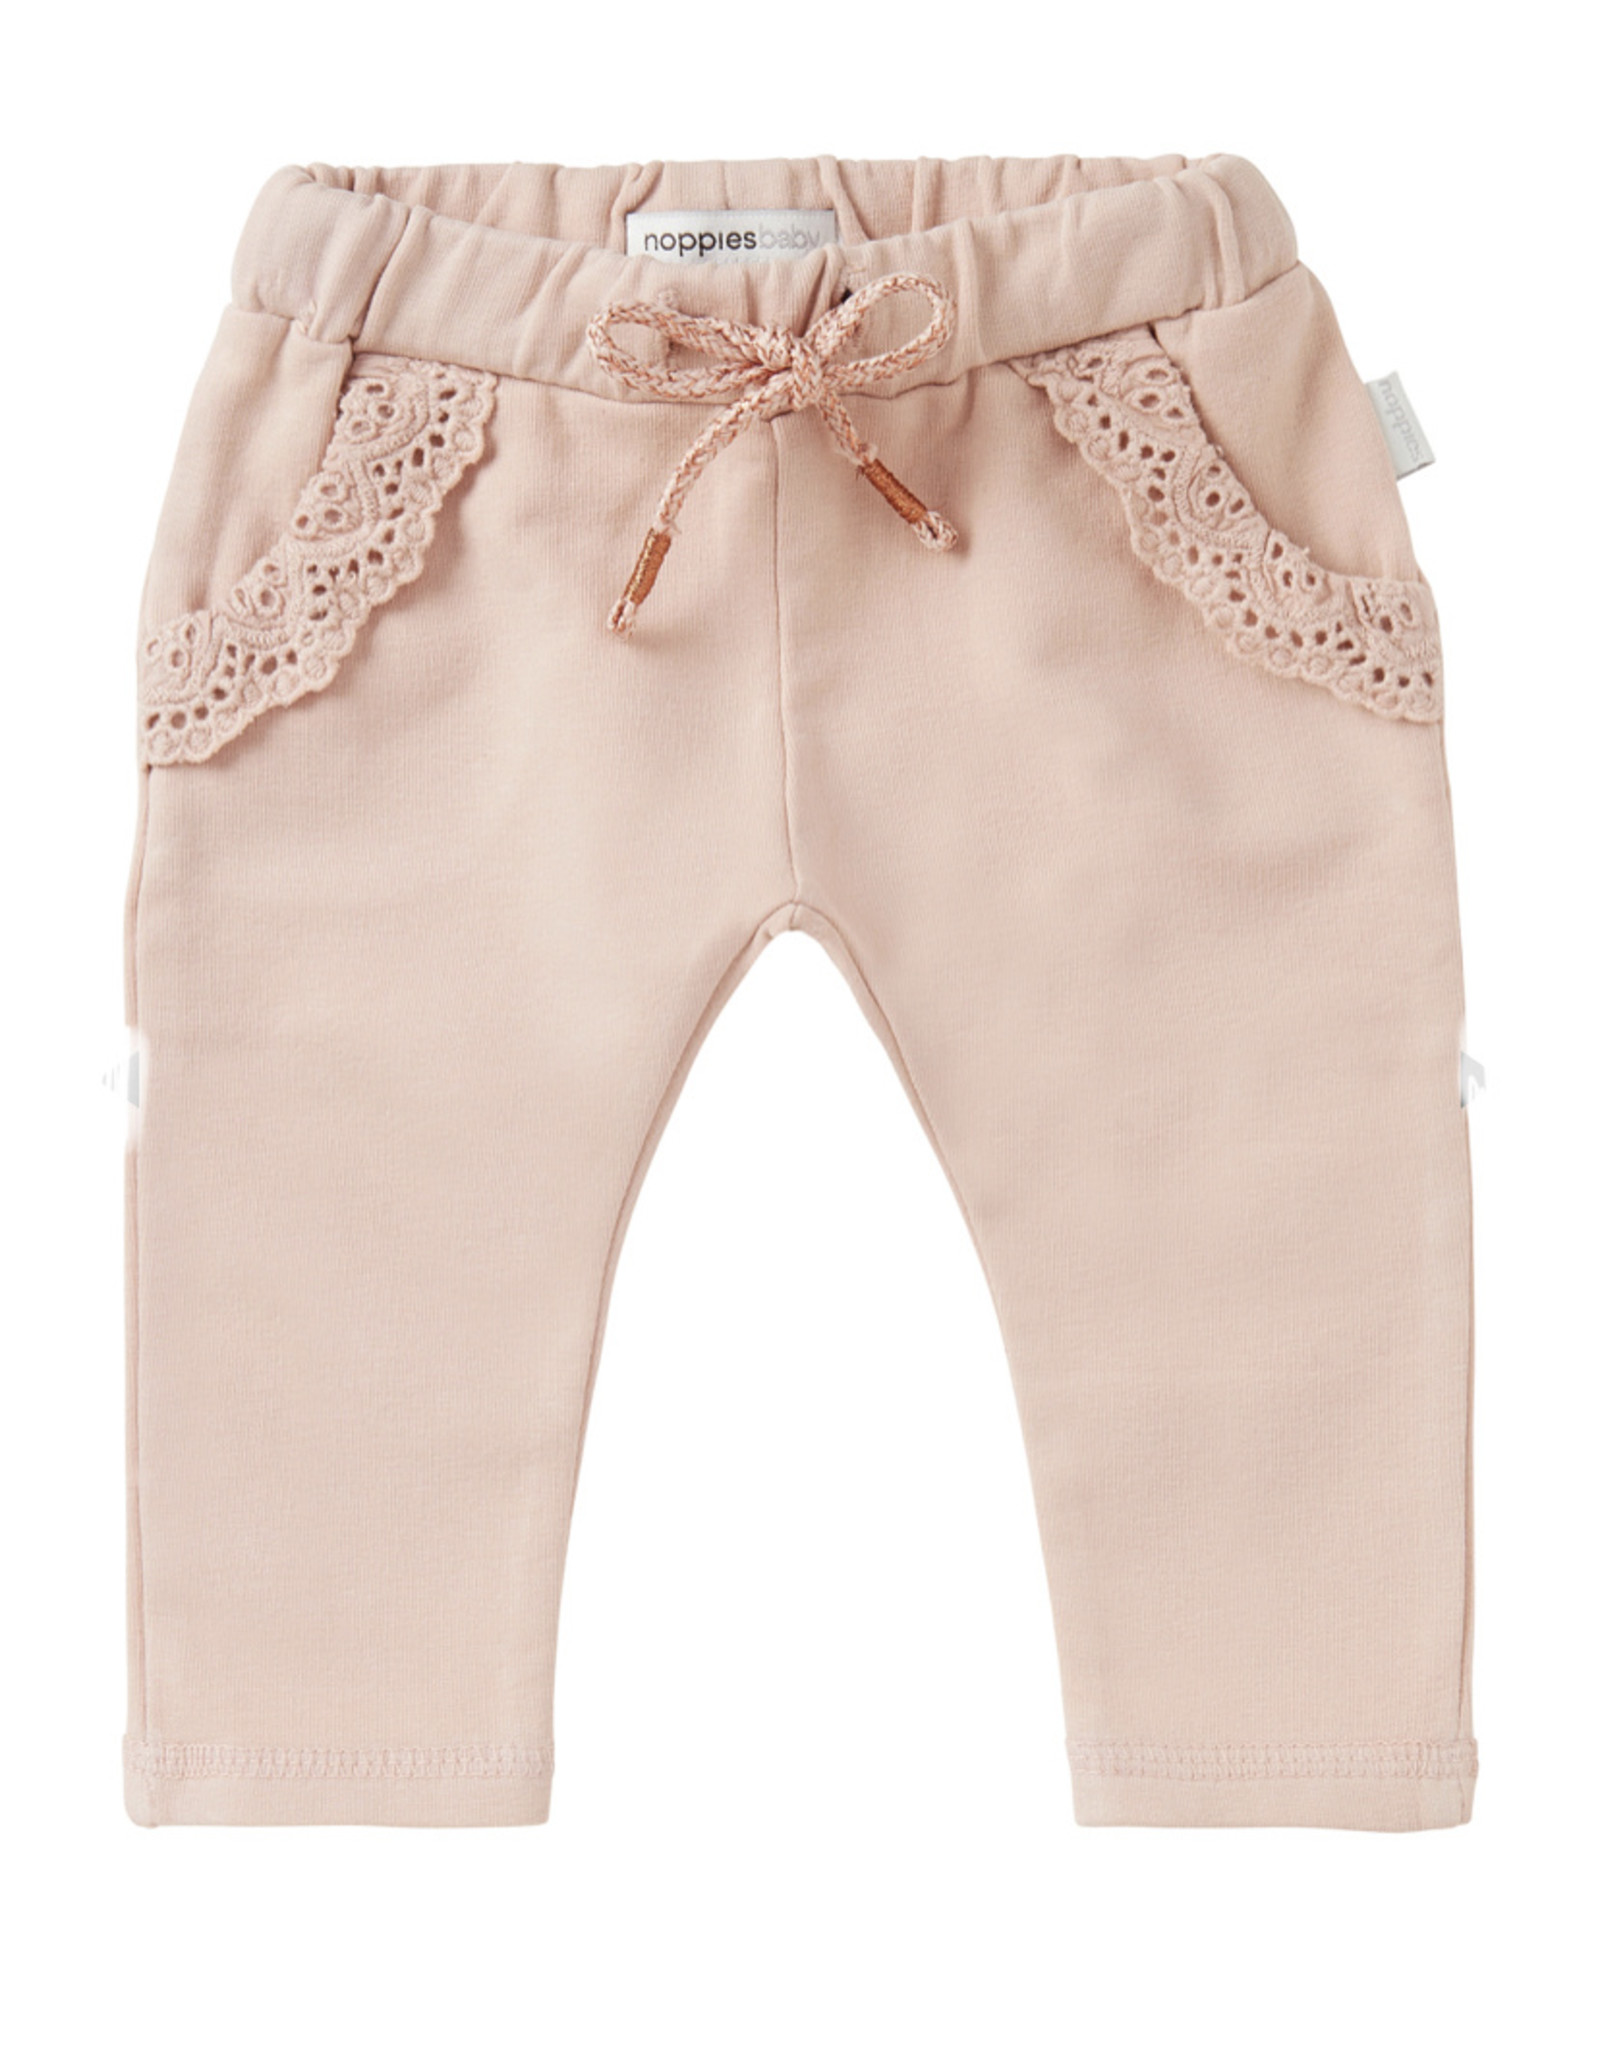 noppies Noppies - Girls Pants - Madadeni